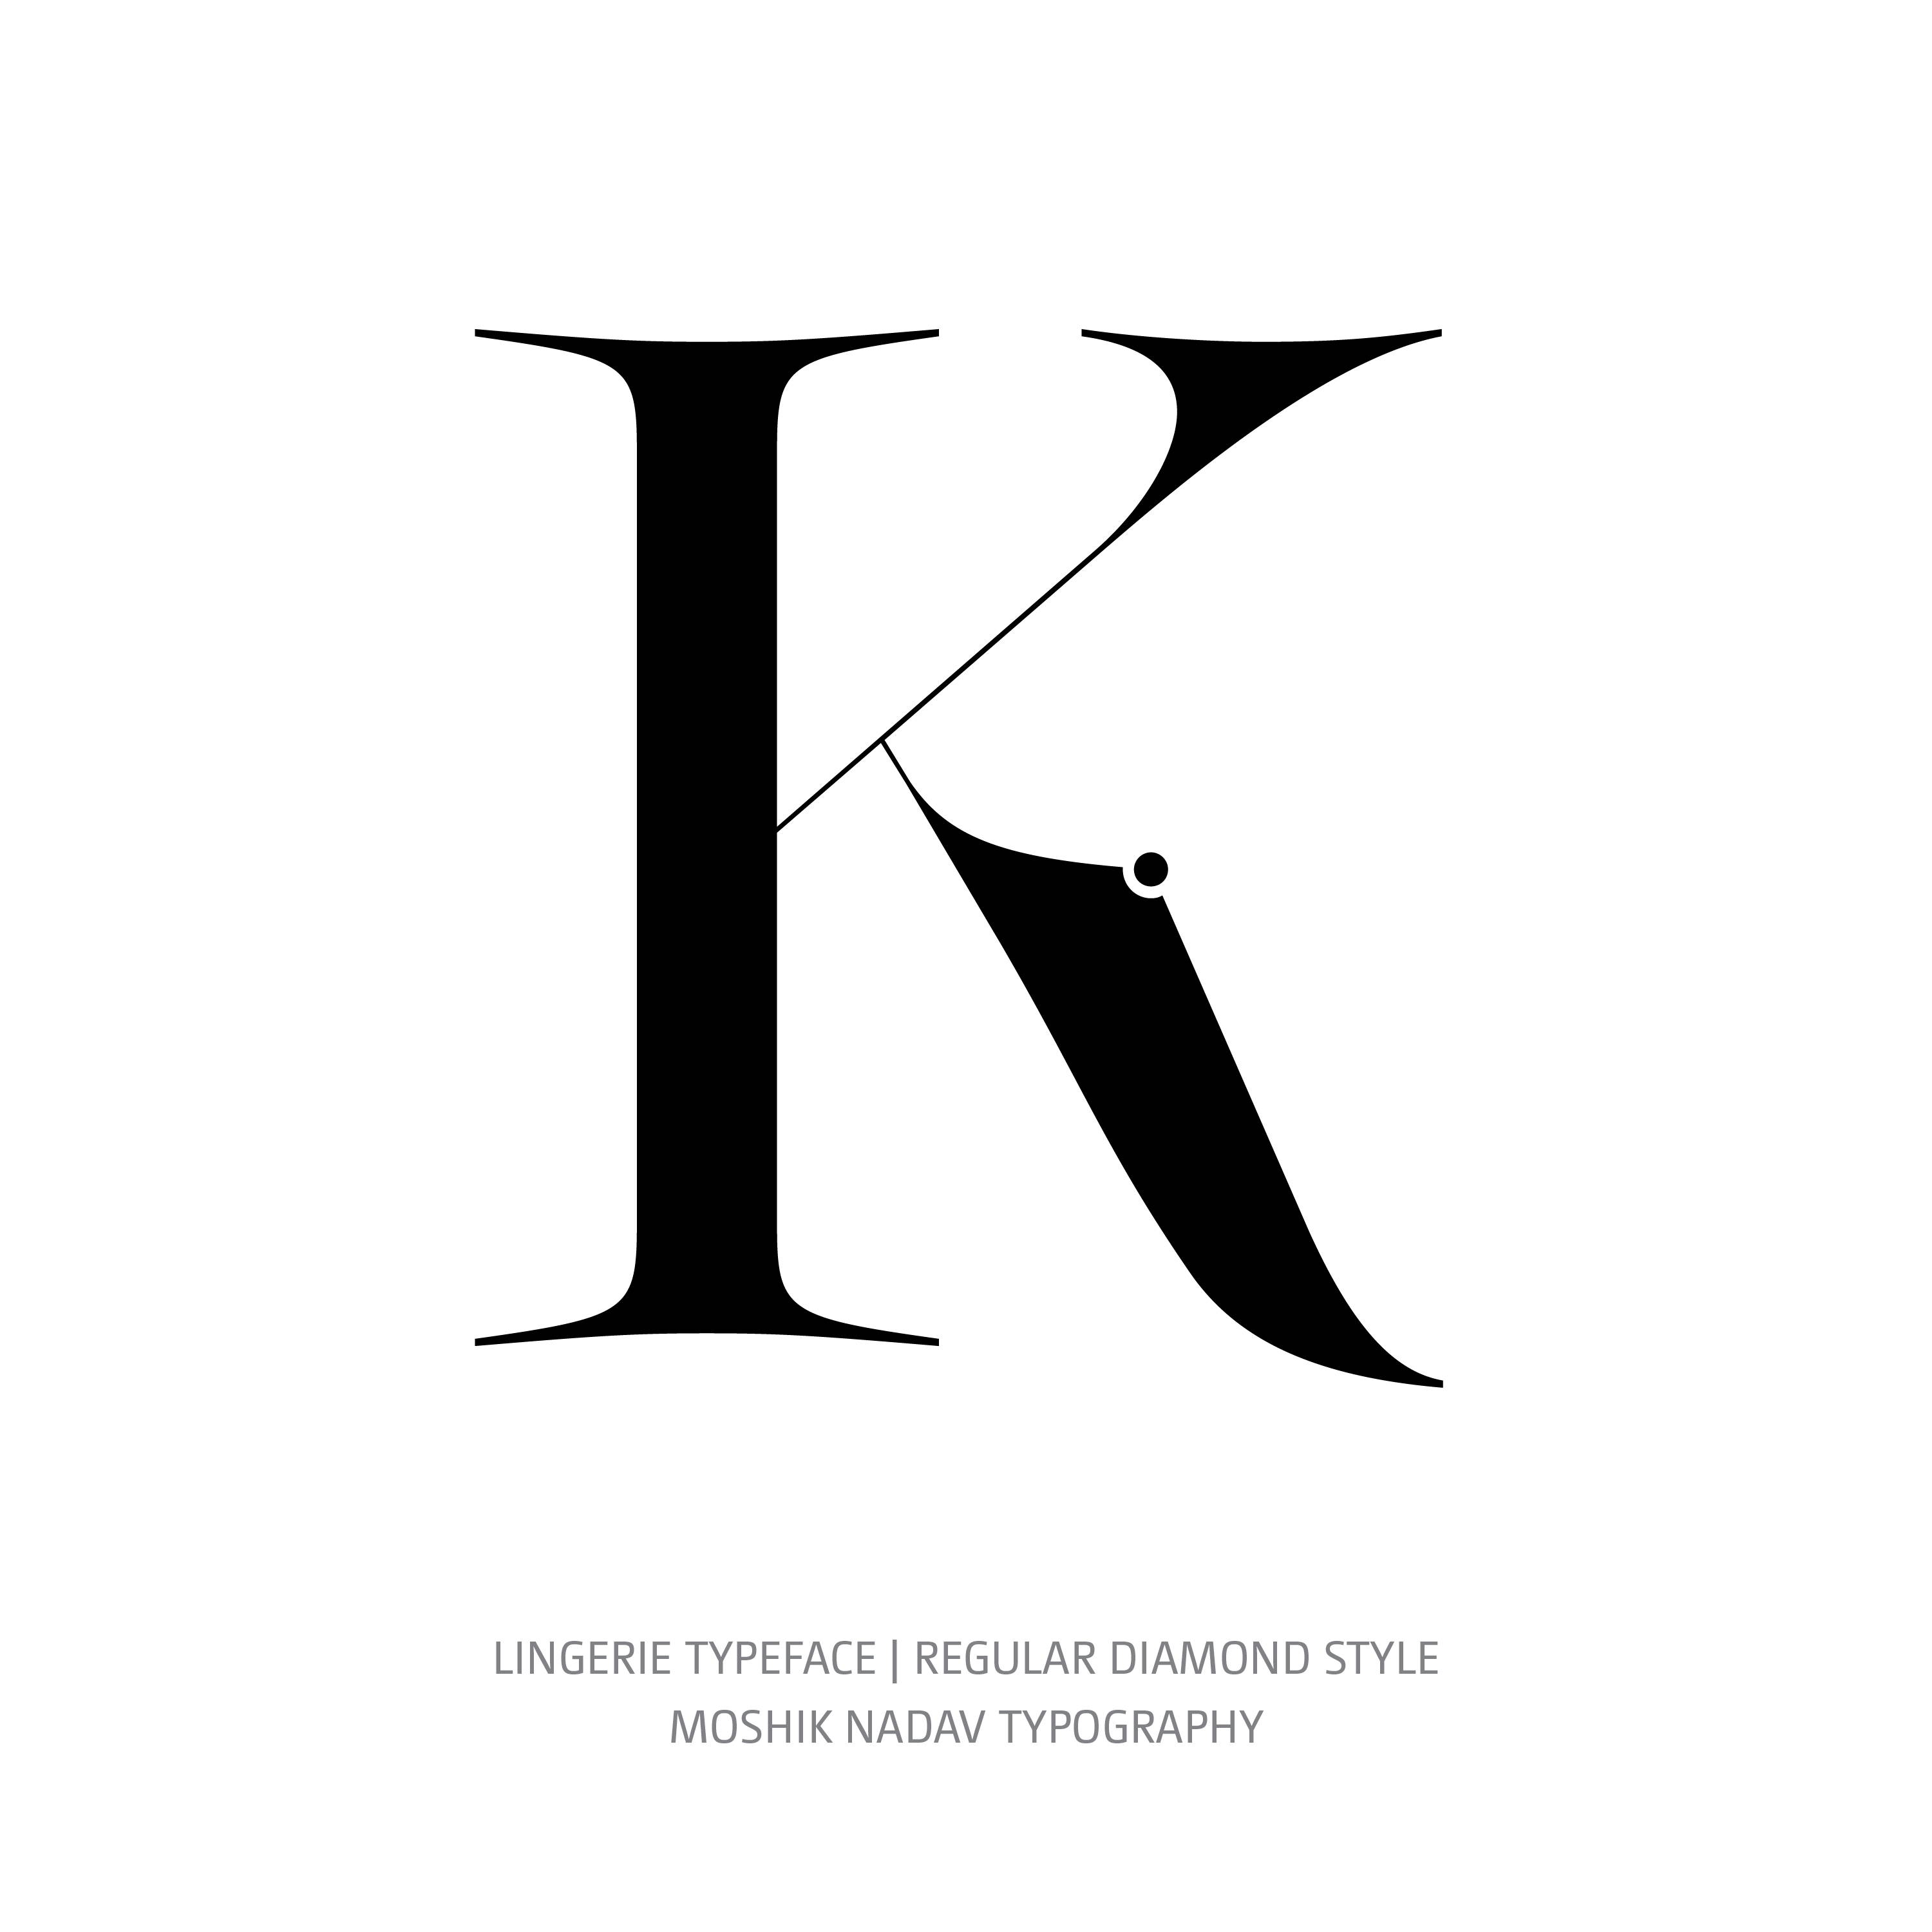 Lingerie Typeface Regular Diamond K